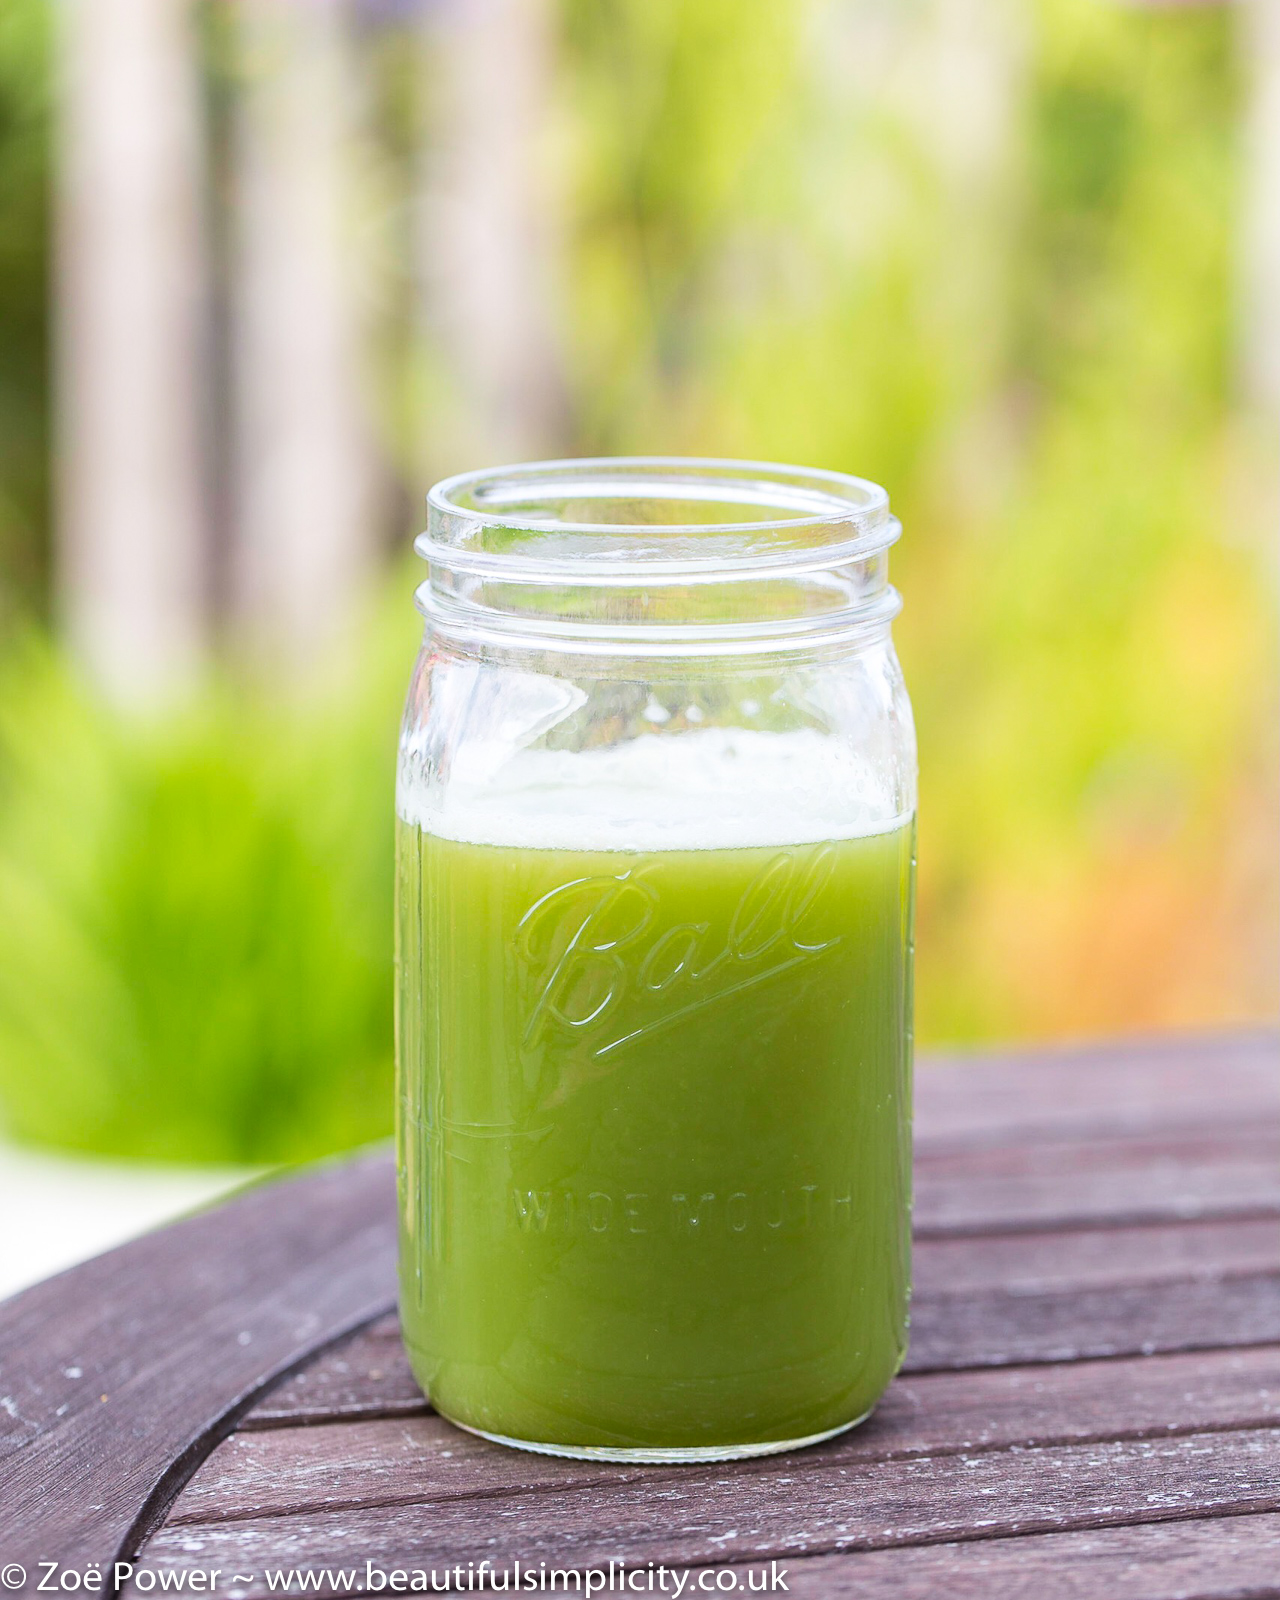 Celery juice | CHRONIC FATIGUE SYNDROME (CFS)/ME - WHAT I'M DOING TO RECOVER - PART 2 OF 3